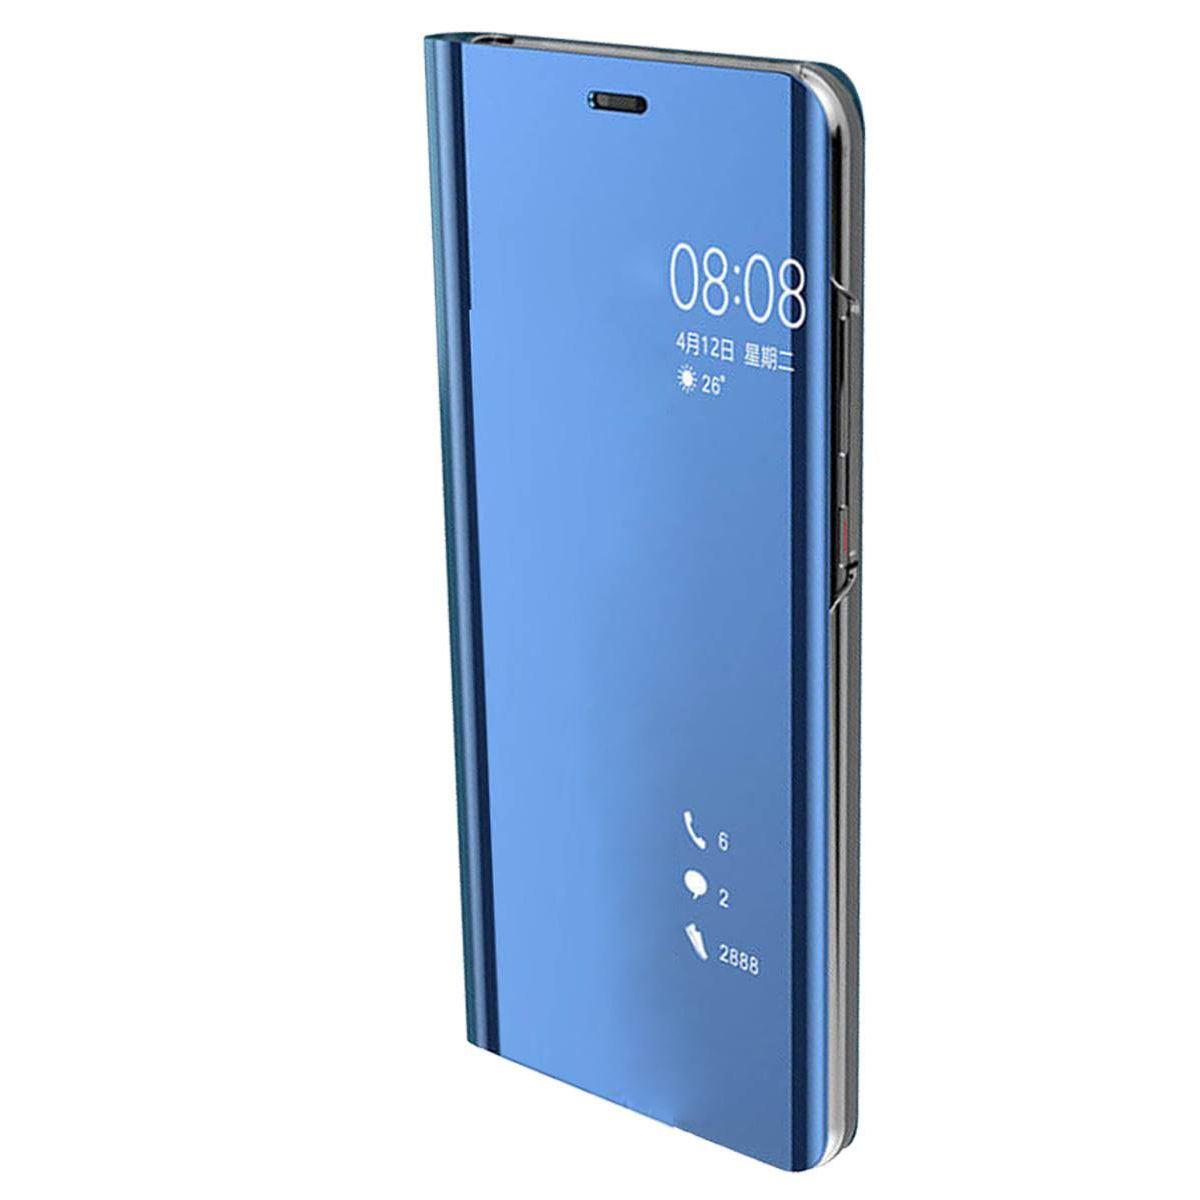 Huawei P30 Case Smart View Mirror Flip Stand Cover - Blue